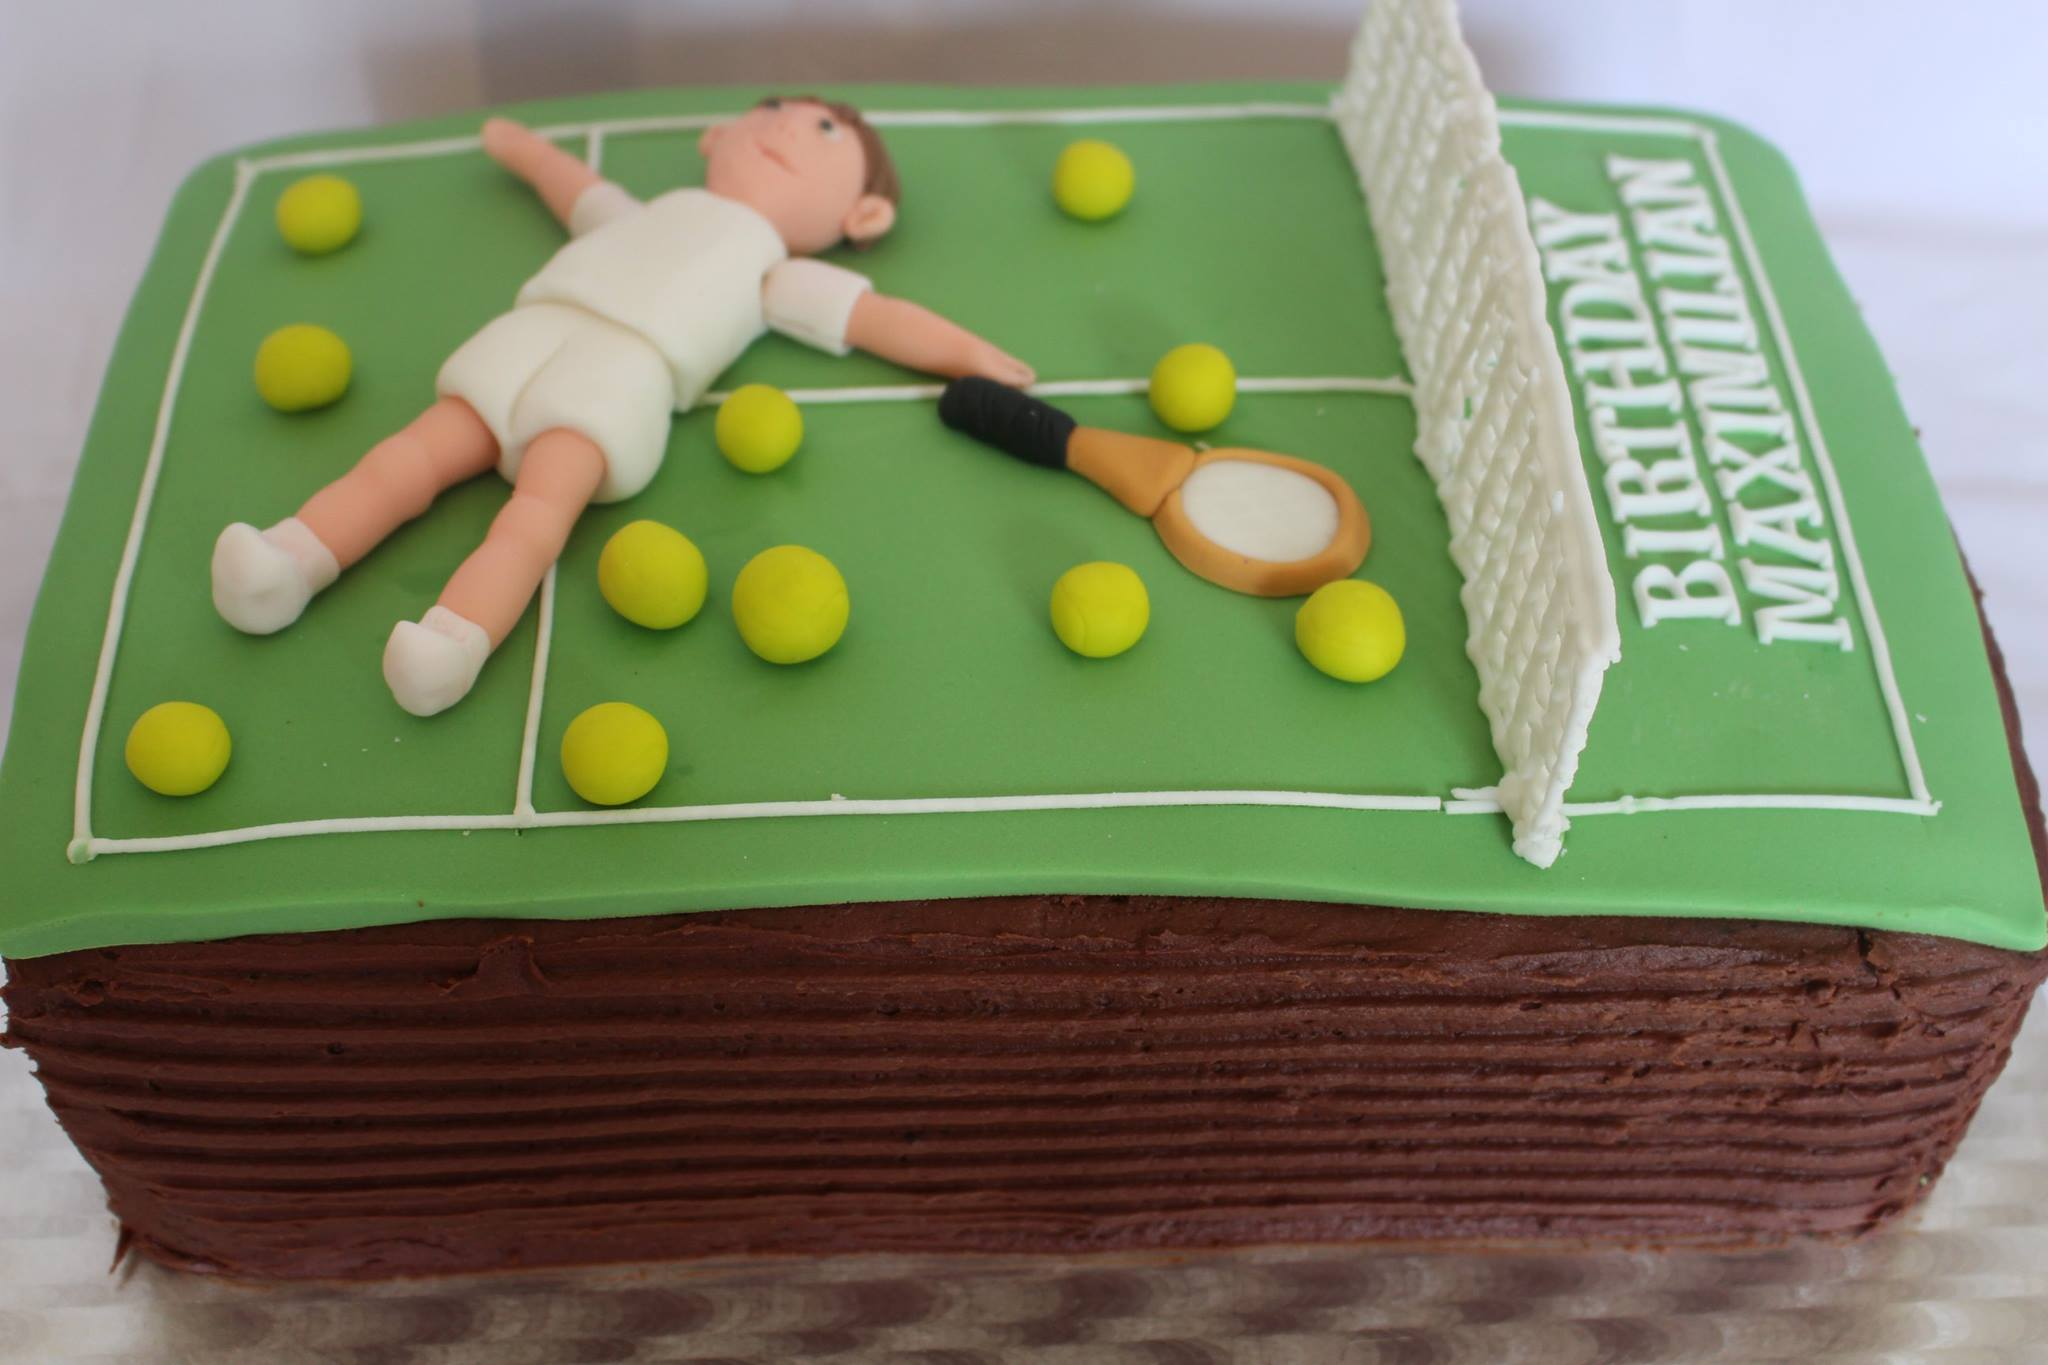 Tennis Decorations For Cakes